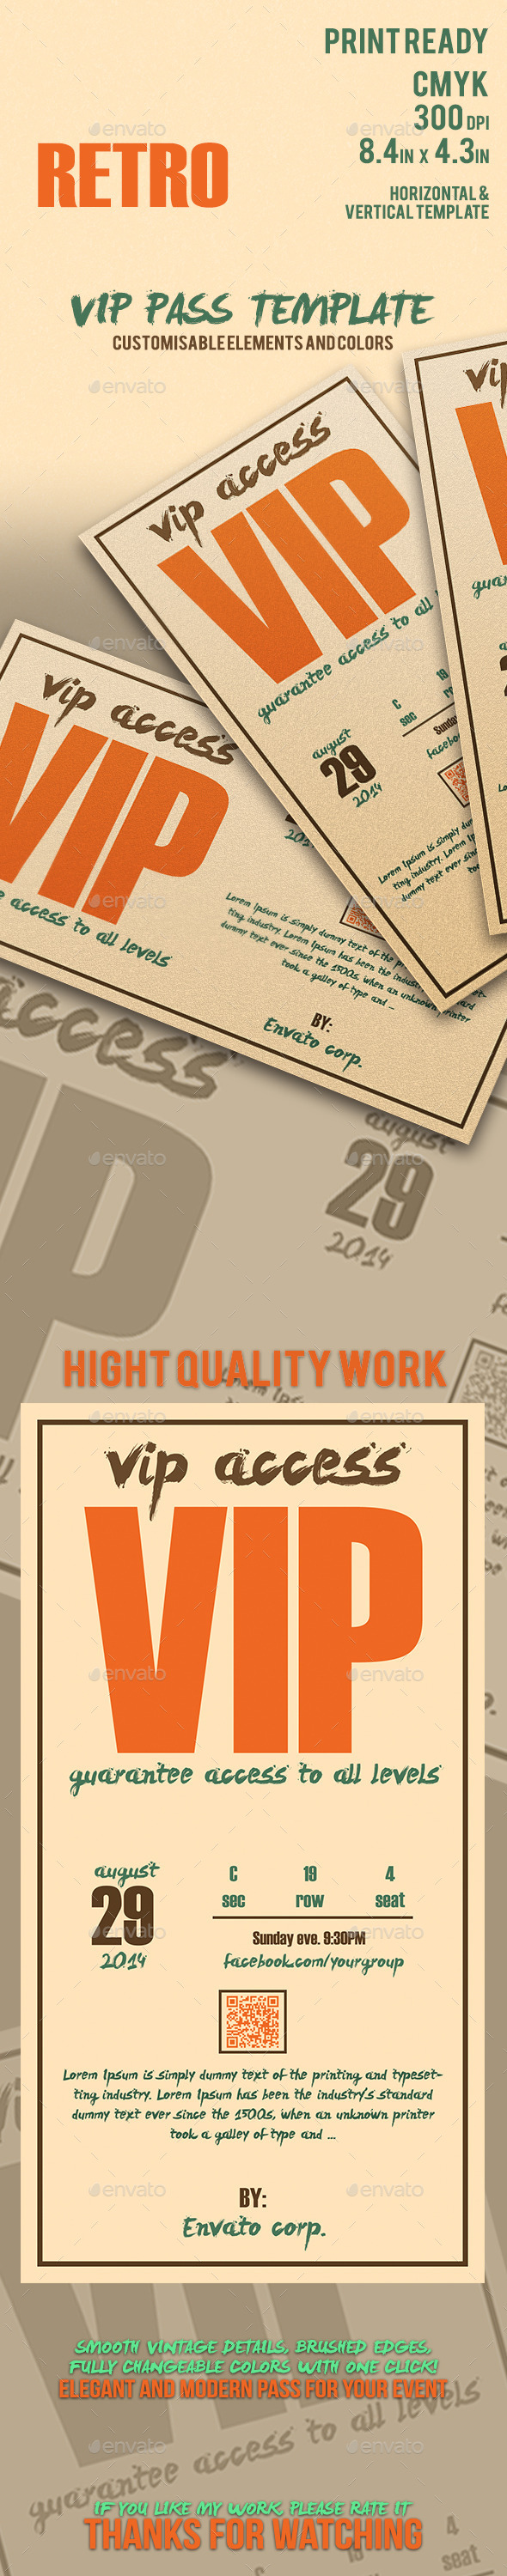 Retro - Elegant Vip Pass Template - Cards & Invites Print Templates